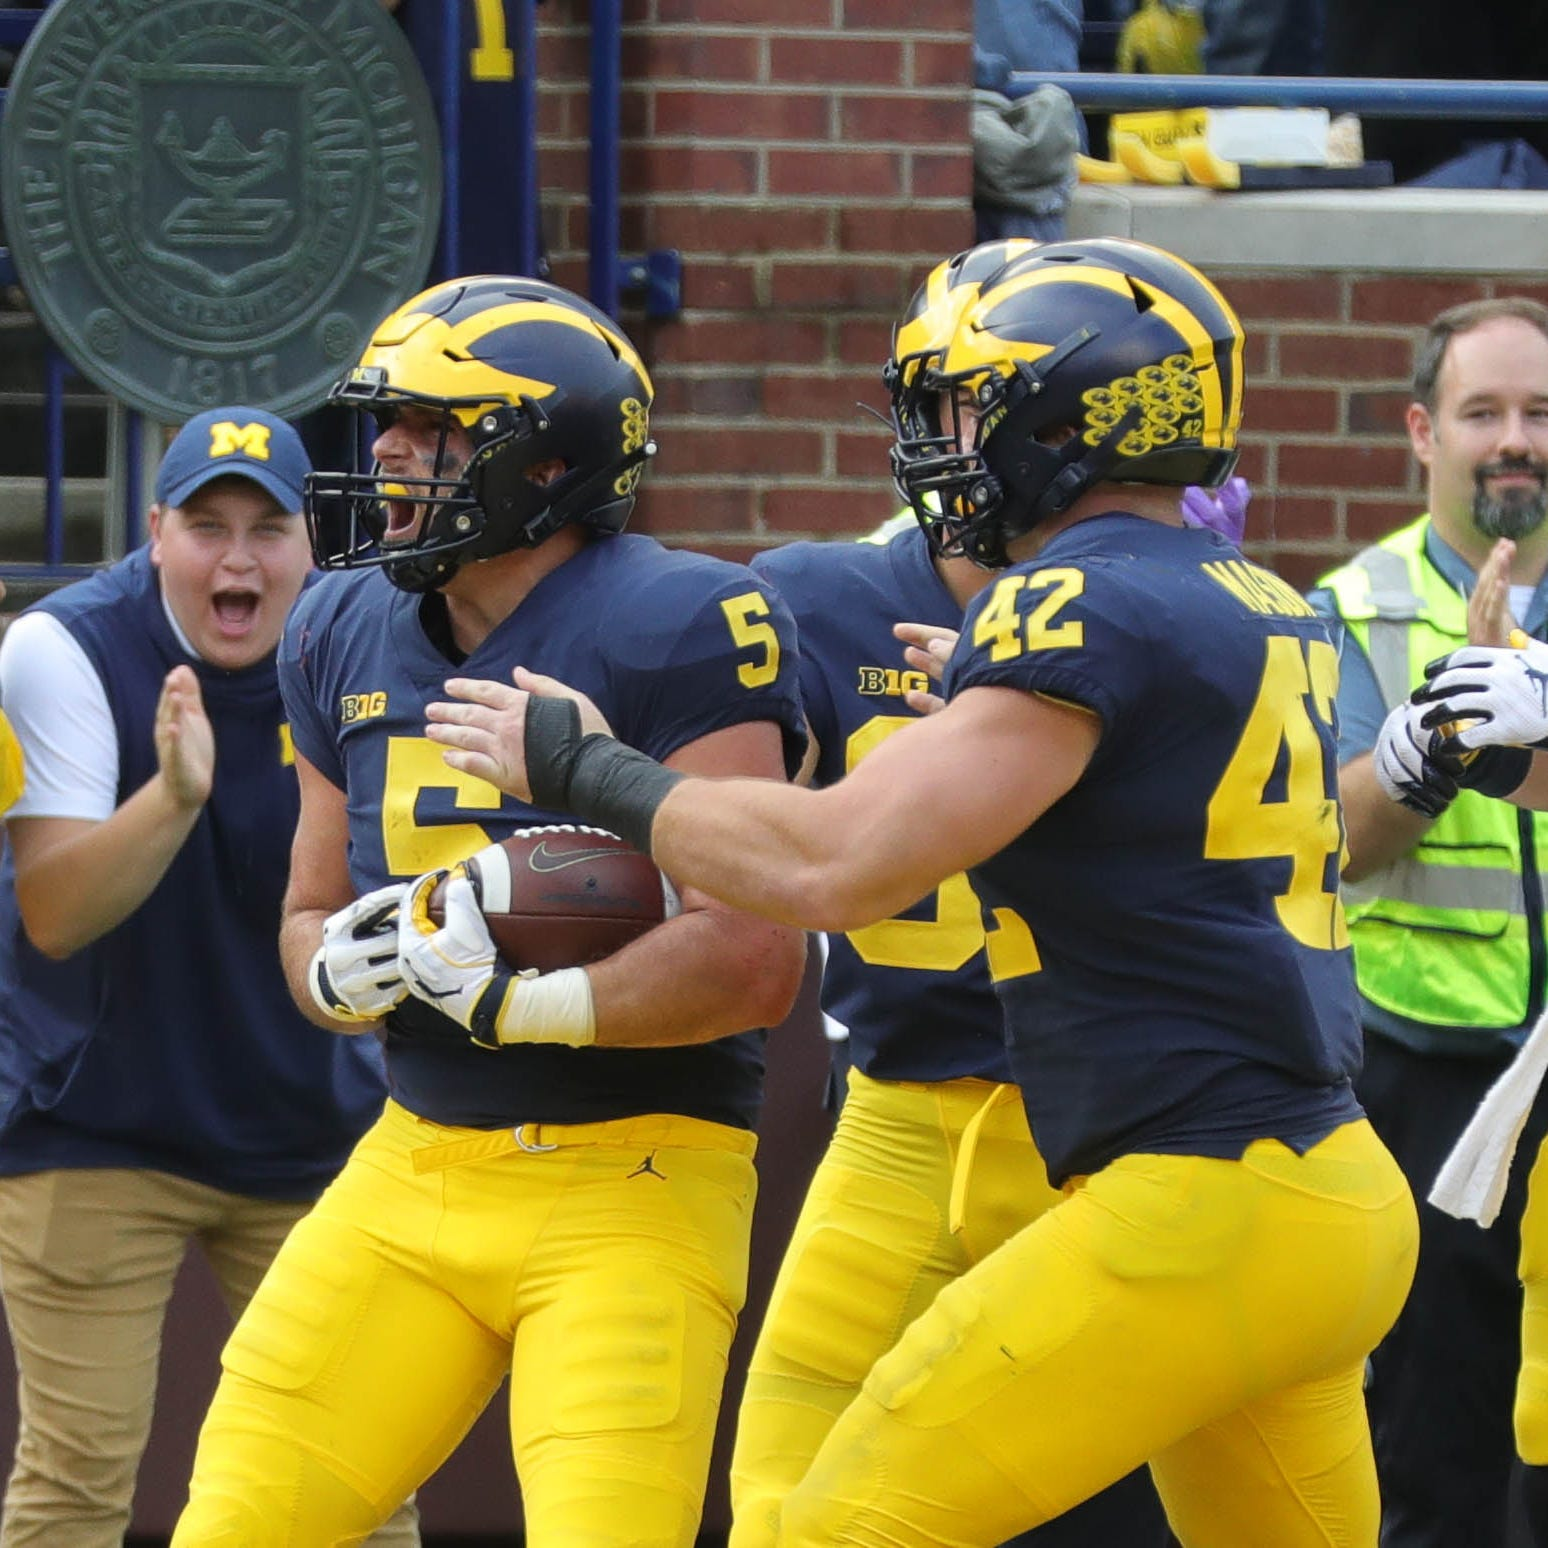 Michigan's Jared Wangler celebrates his touchdown against Maryland during the second half Saturday, Oct. 6, 2018 at Michigan Stadium.